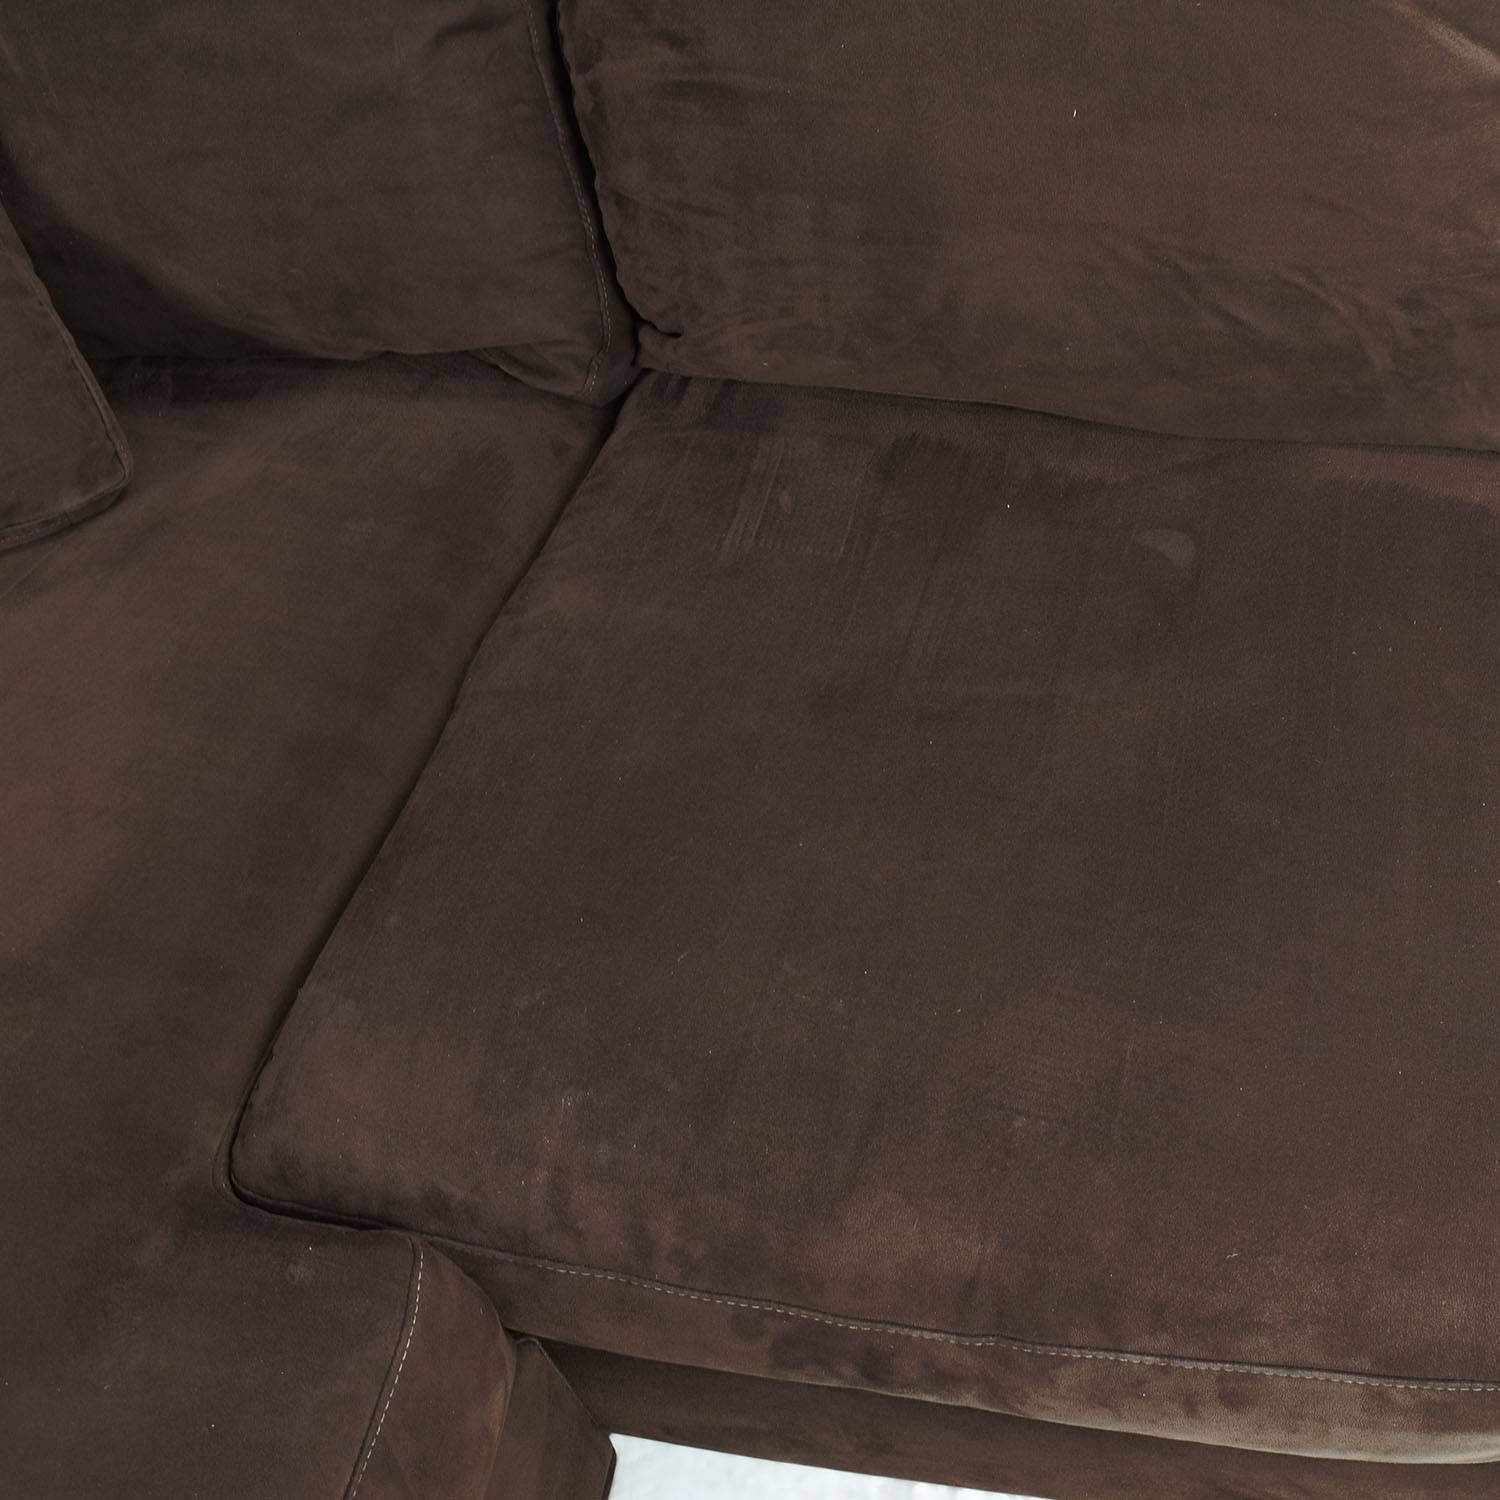 70% Off   Cindy Crawford Home Cindy Crawford Bailey Microfiber With Regard To Cindy Crawford Microfiber Sofas (Photo 6 of 15)